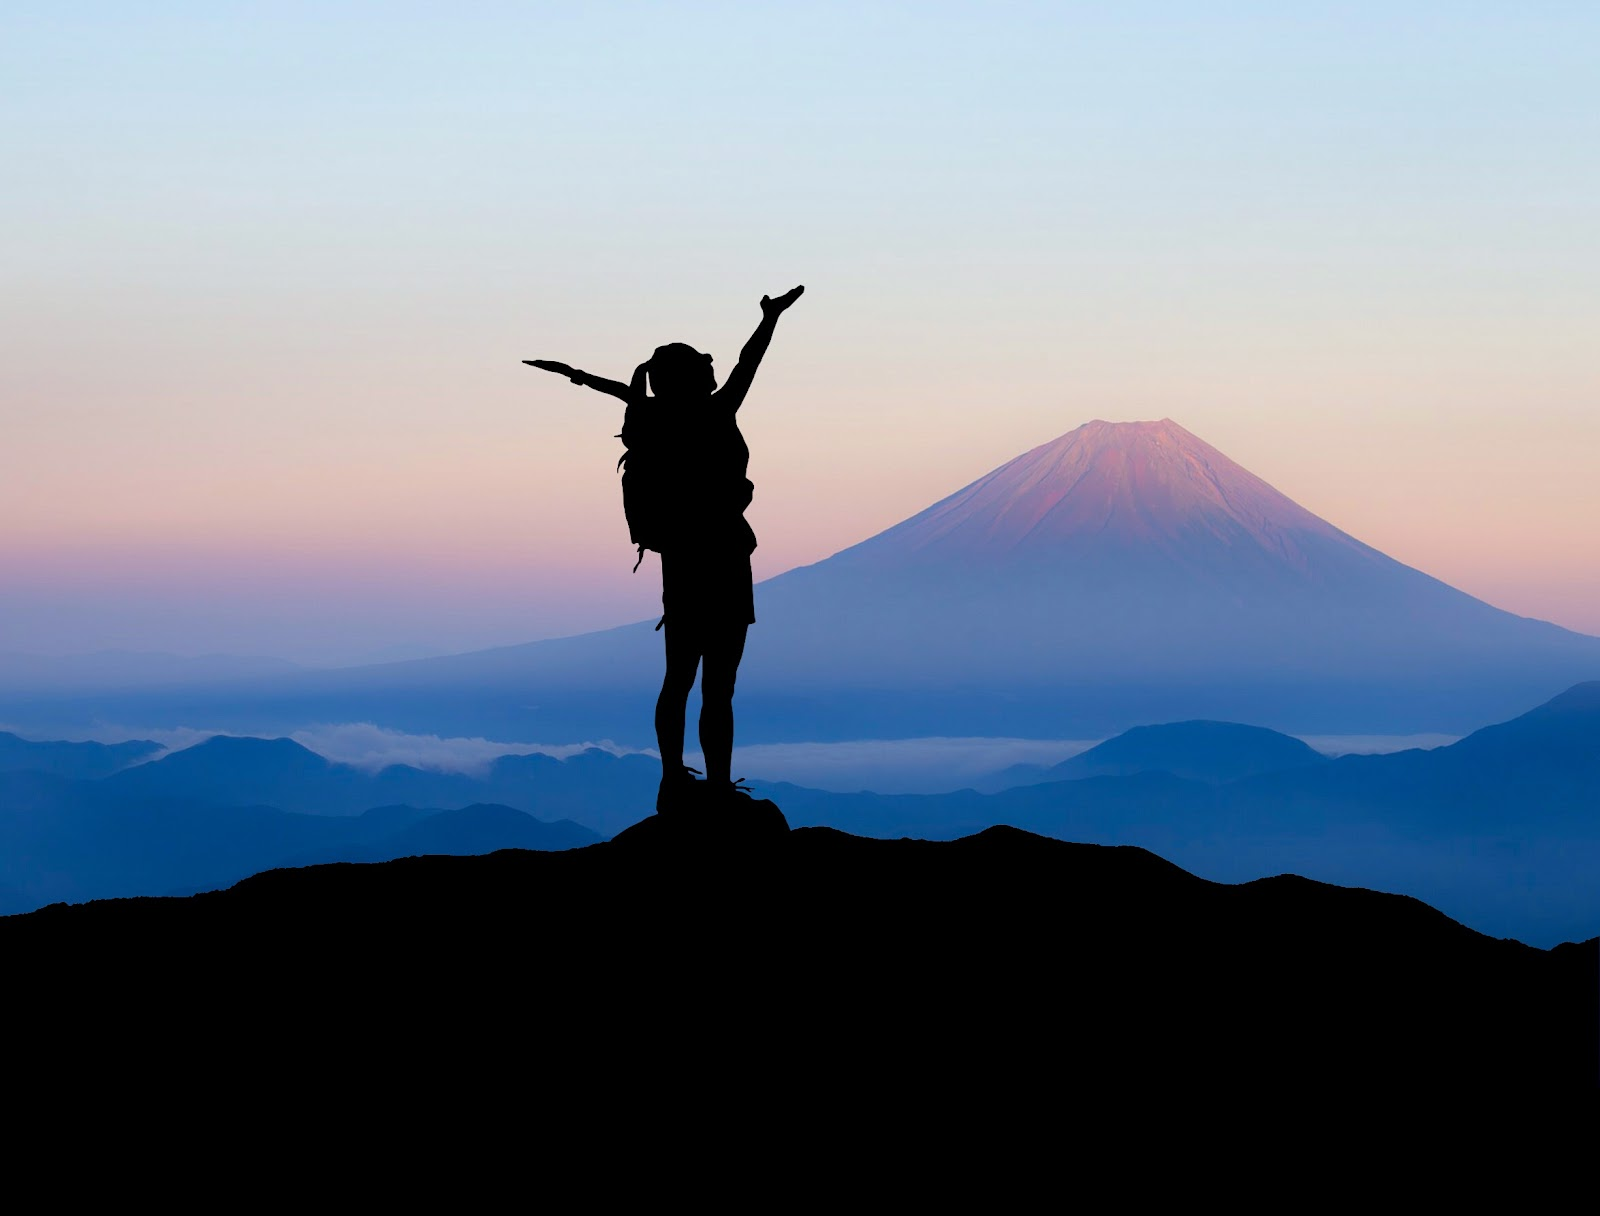 Silhouette of mountain climber at the top of a peak with the sun shining through a purple peak further in the distance. They're celebrating their success.